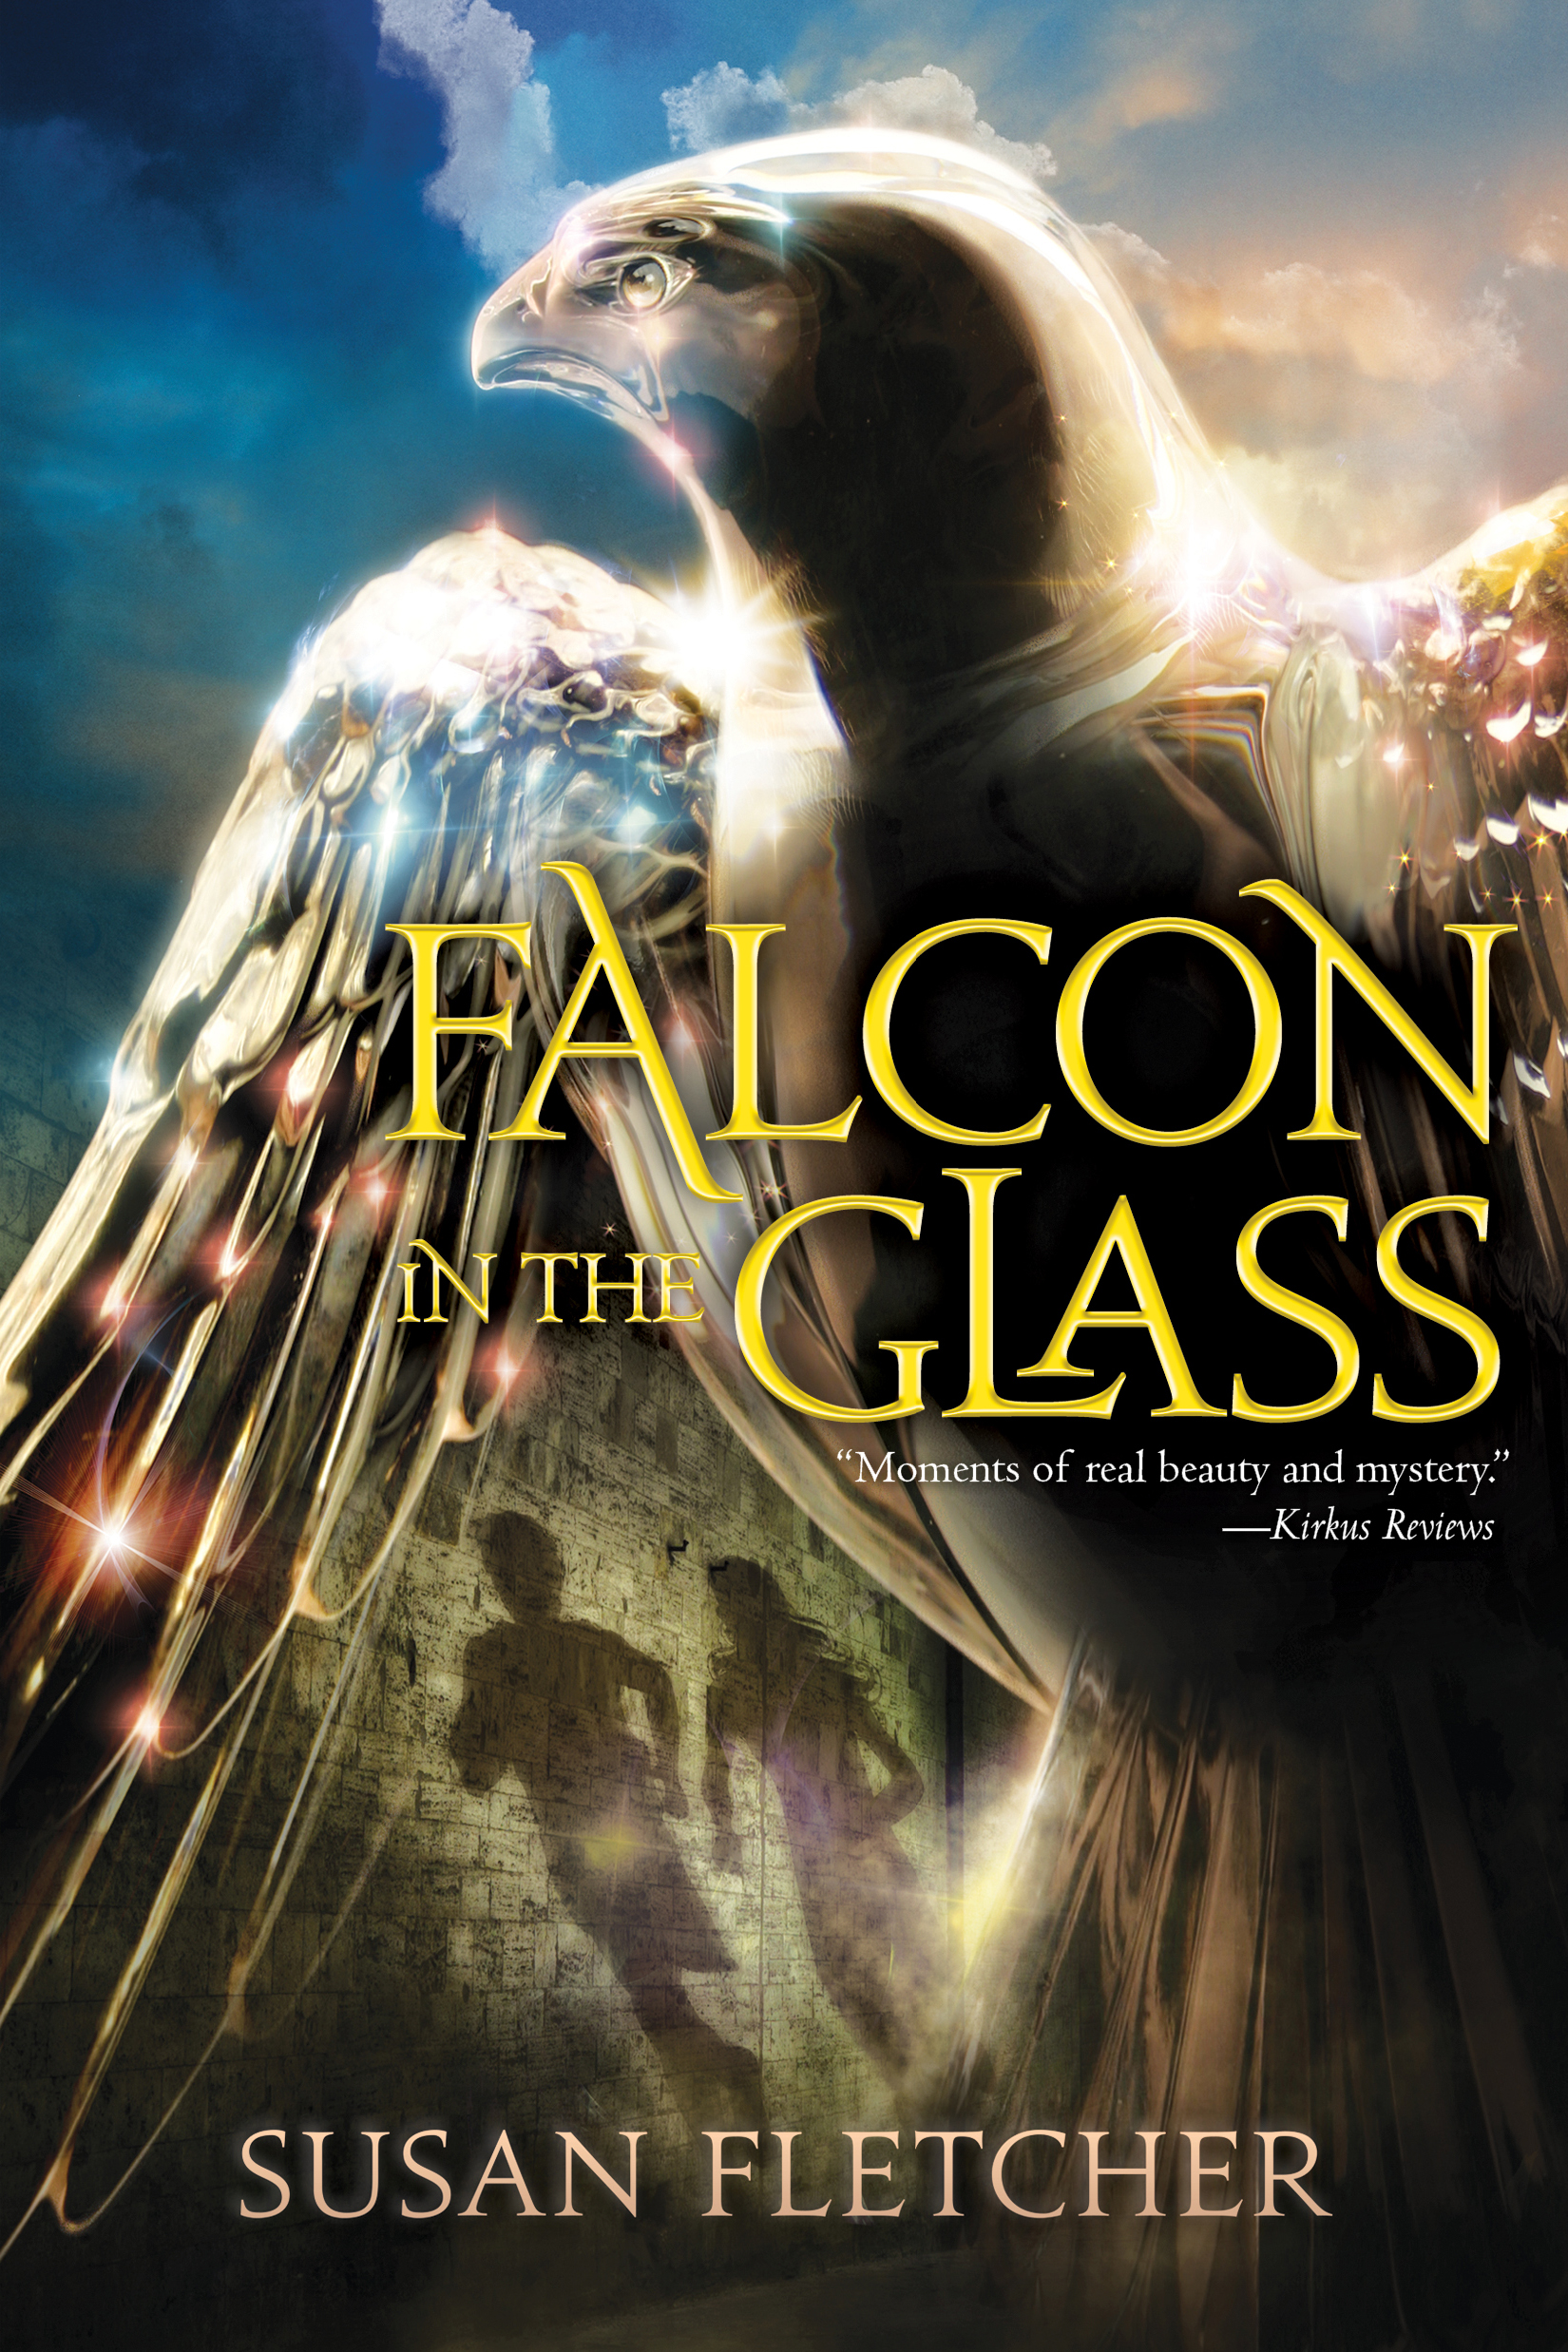 Falcon-in-the-glass-9781442429918_hr